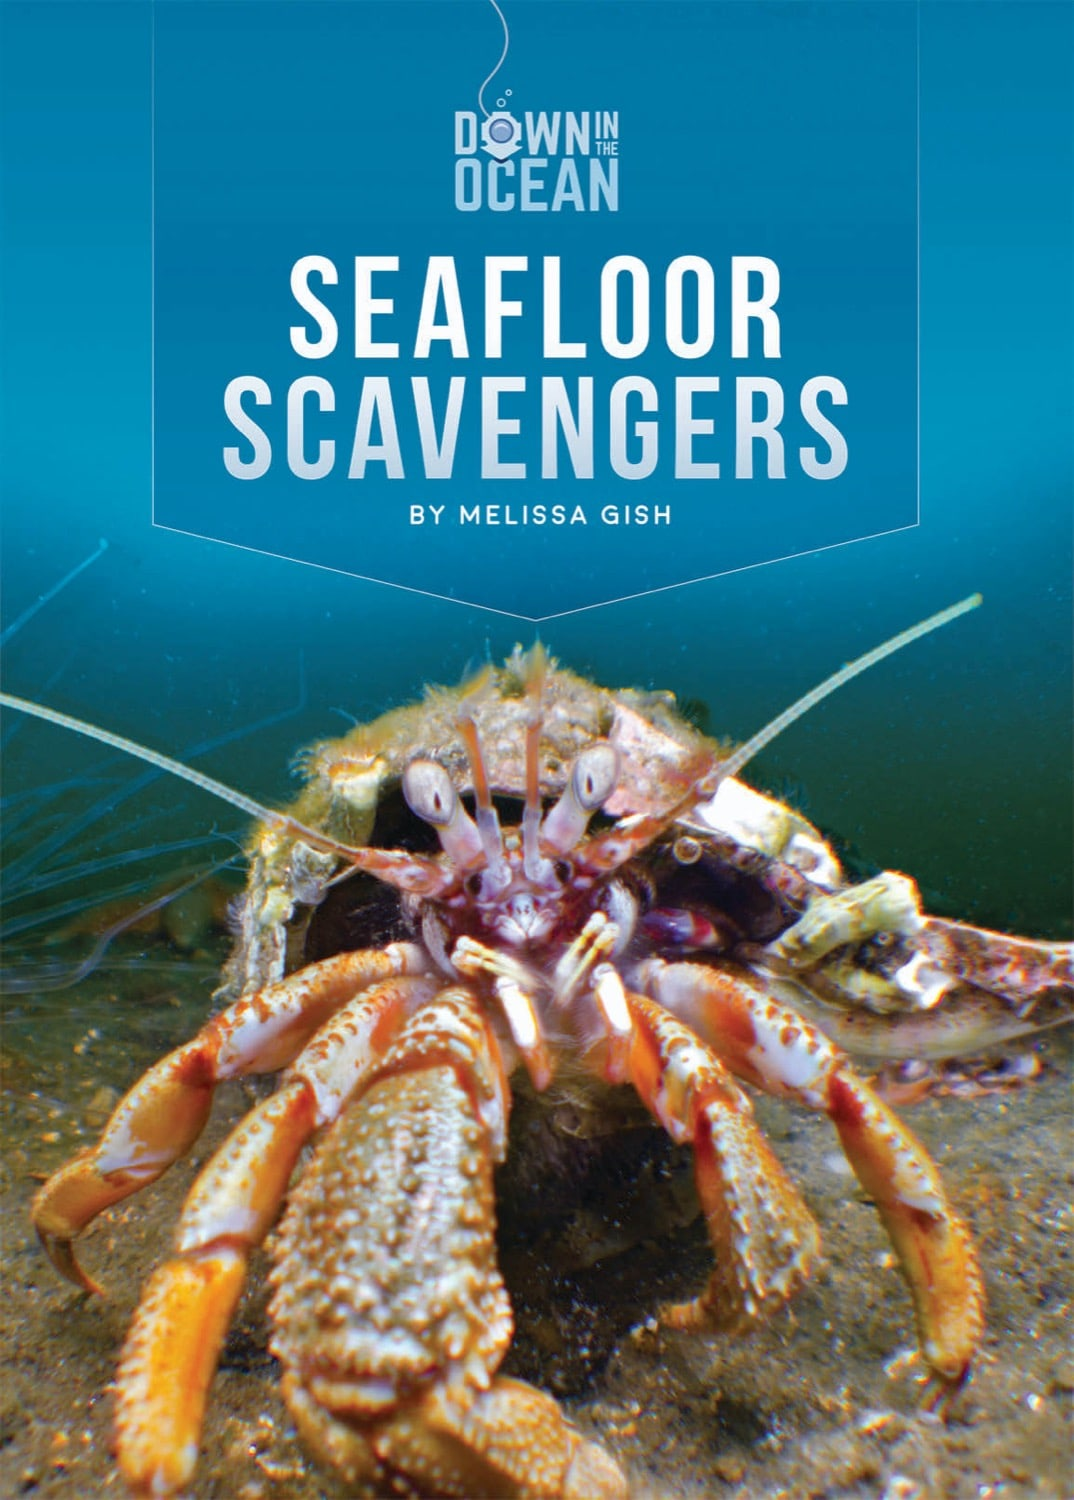 Down in the Ocean: Seafloor Scavengers